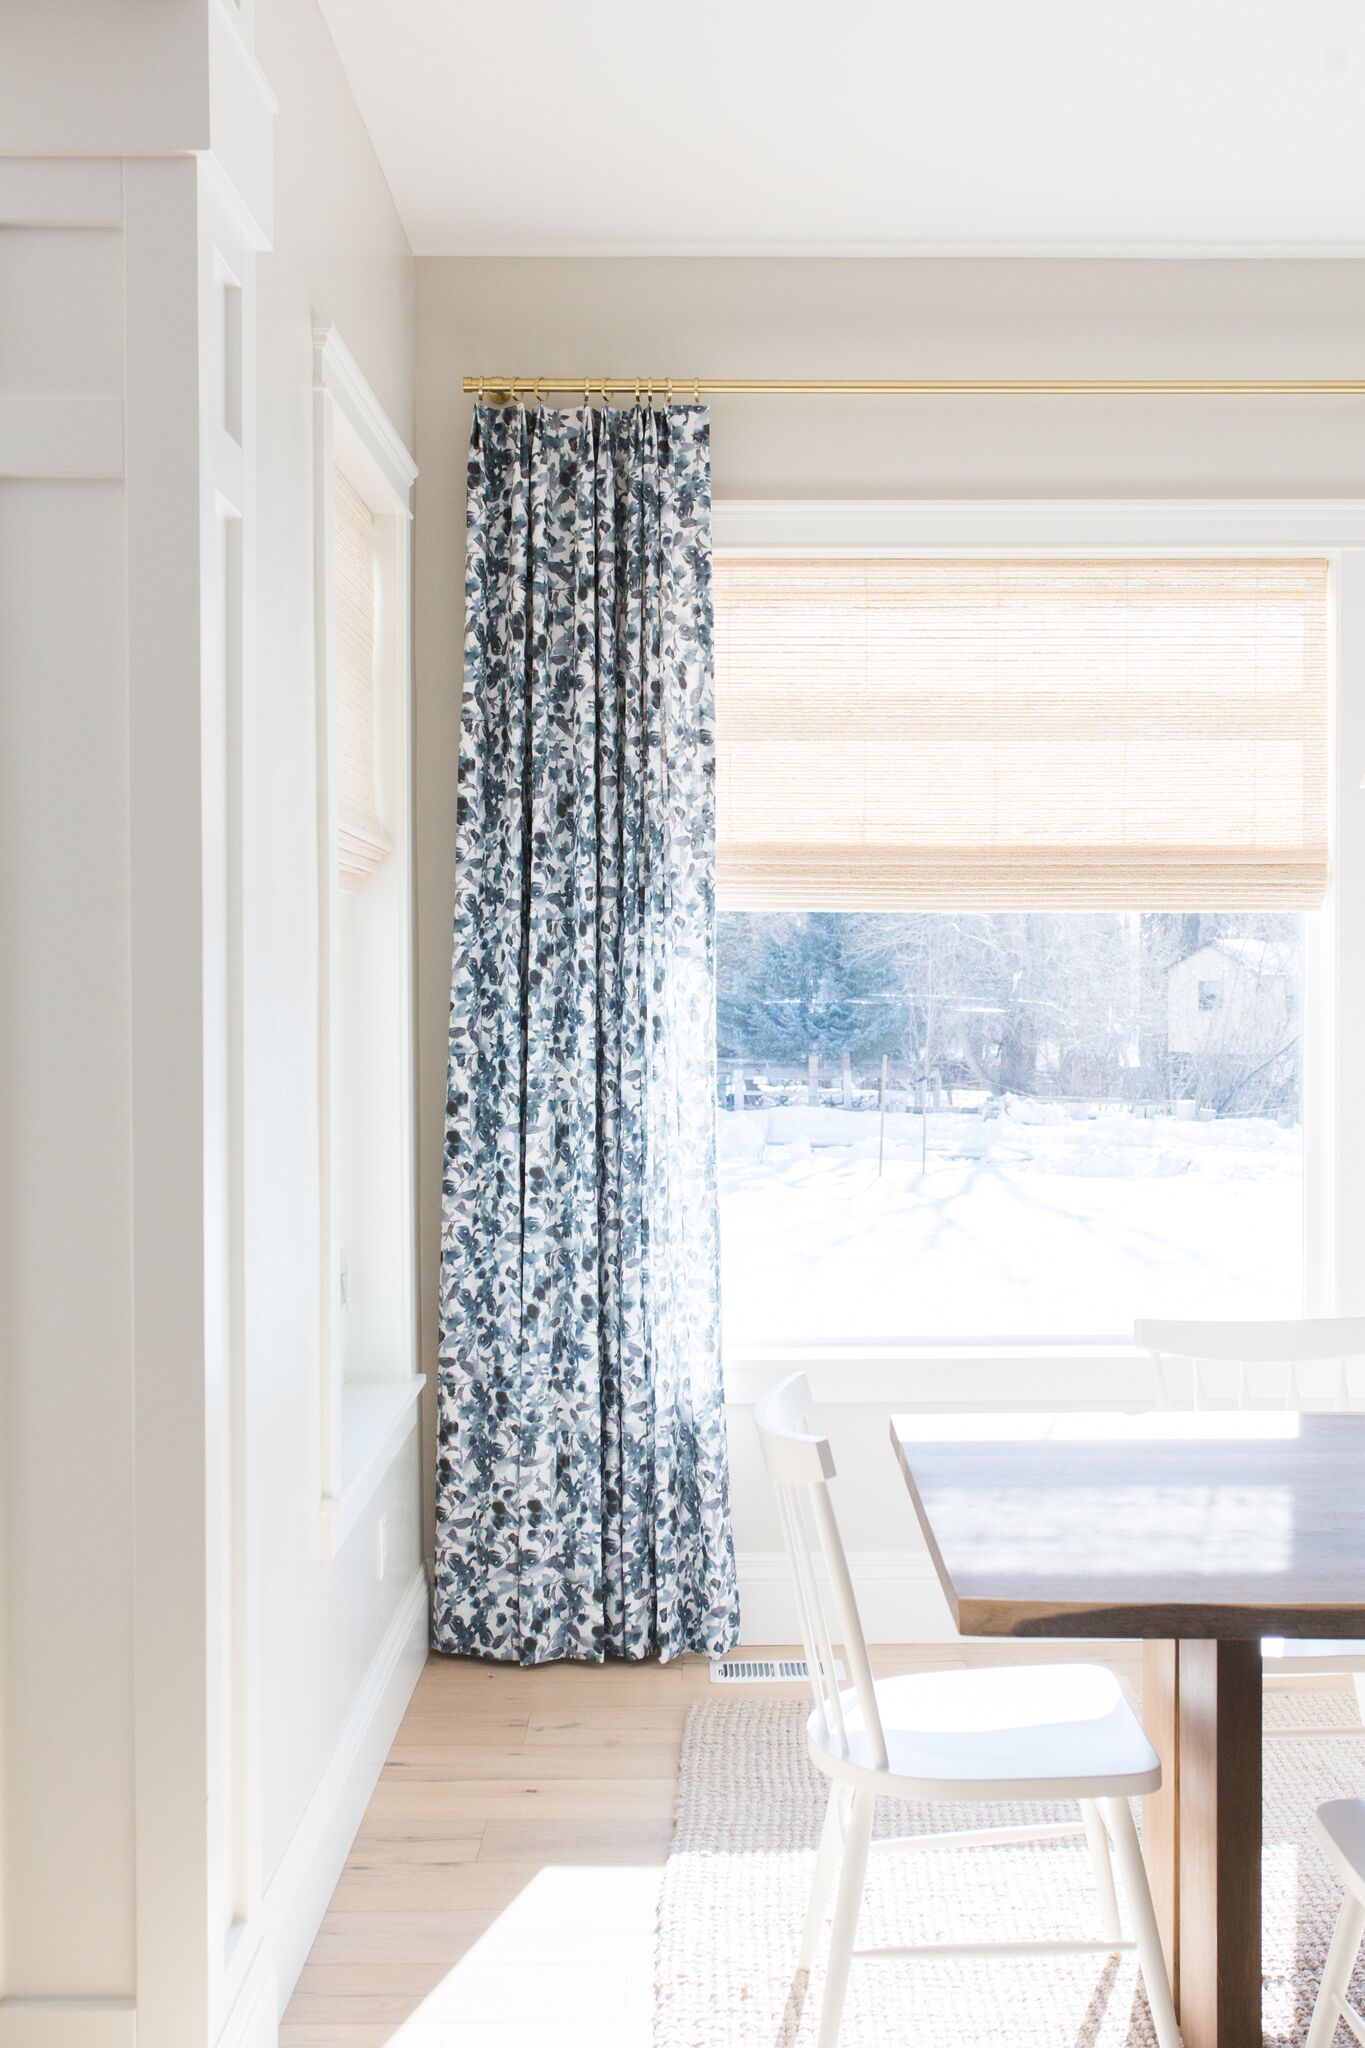 Kitchen dining area with blue and white curtains